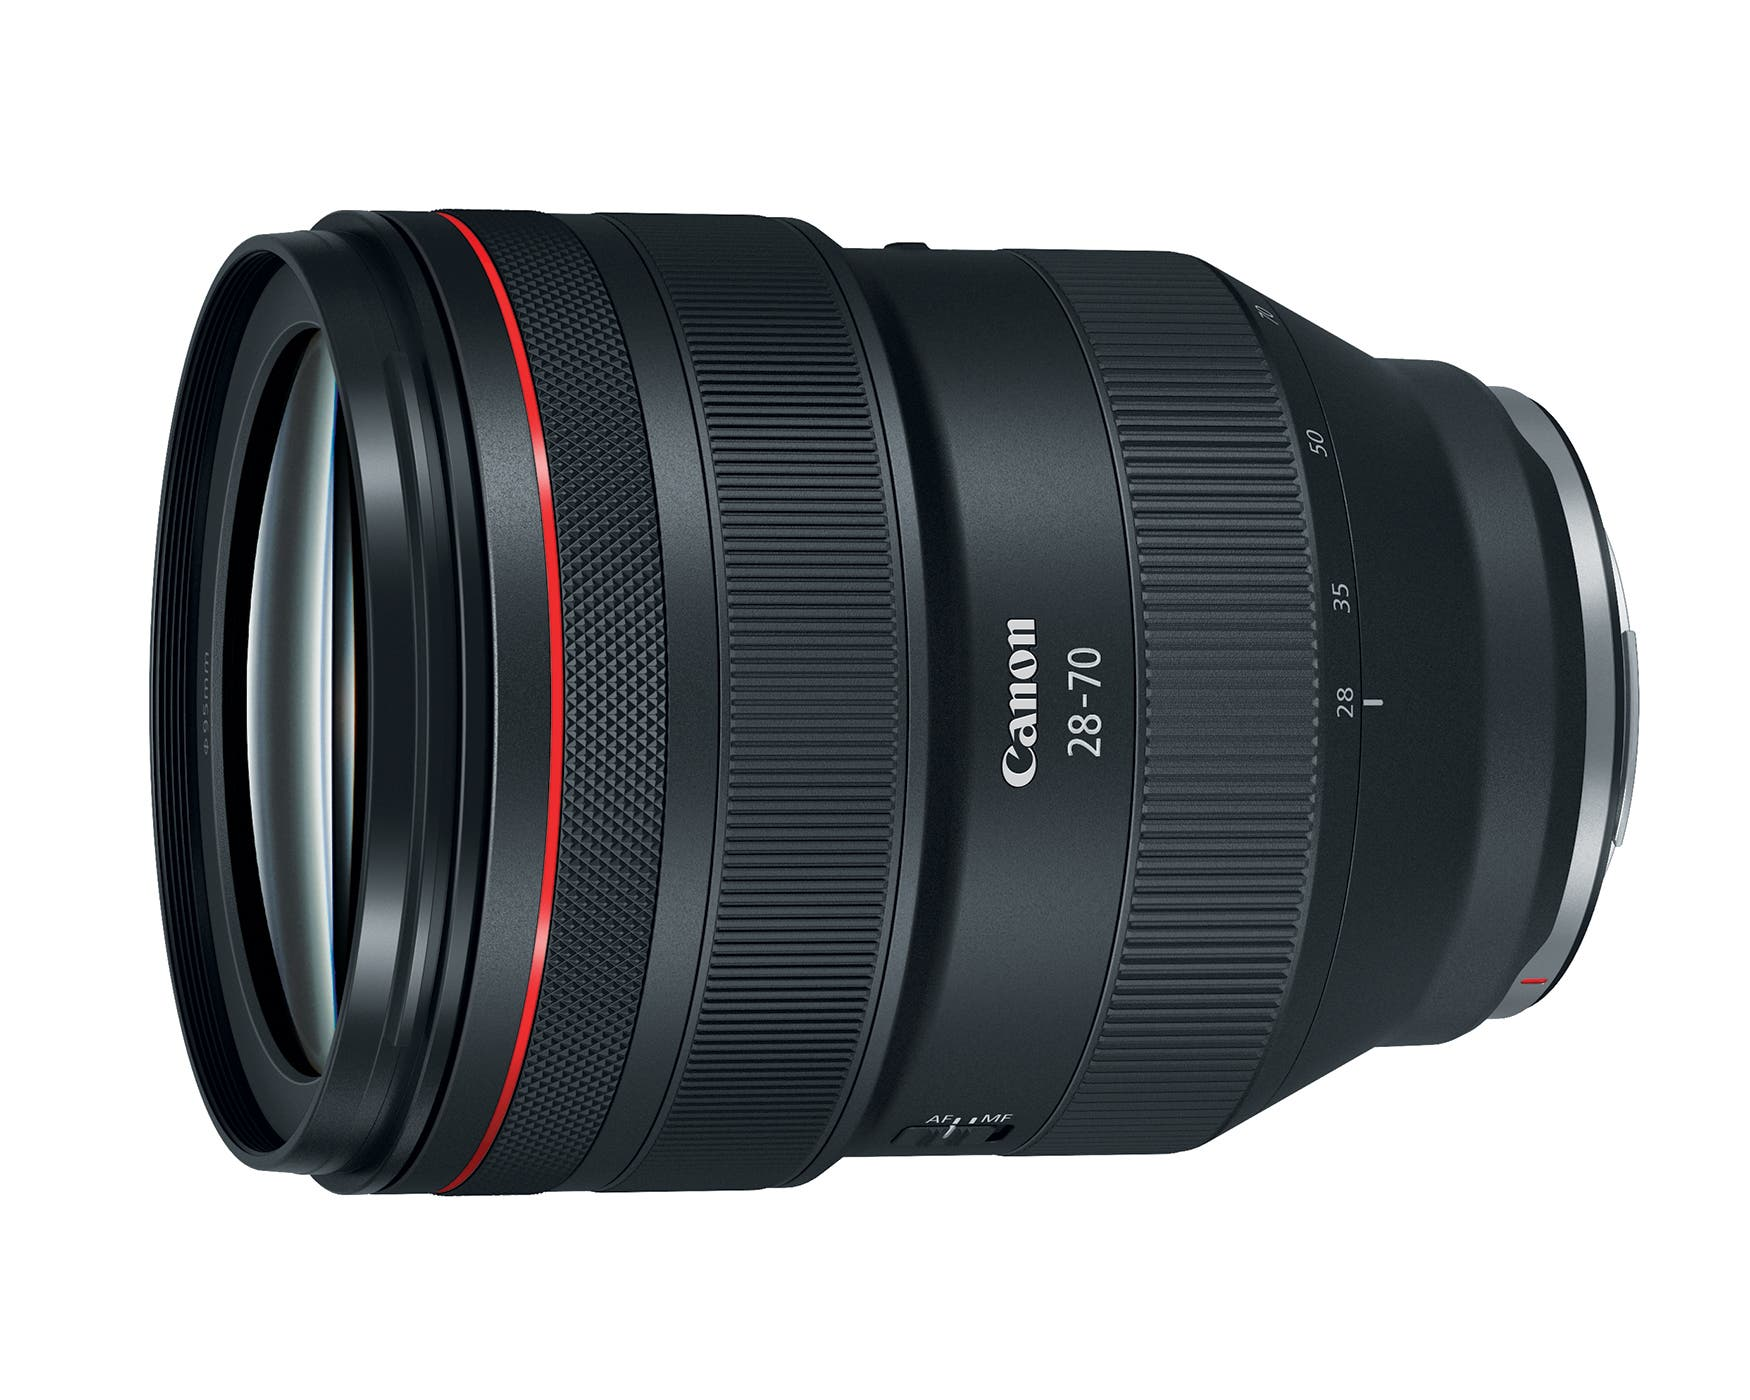 DXOMark: The Canon RF 28-70mm F2 L Is One the Best Zoom Lenses